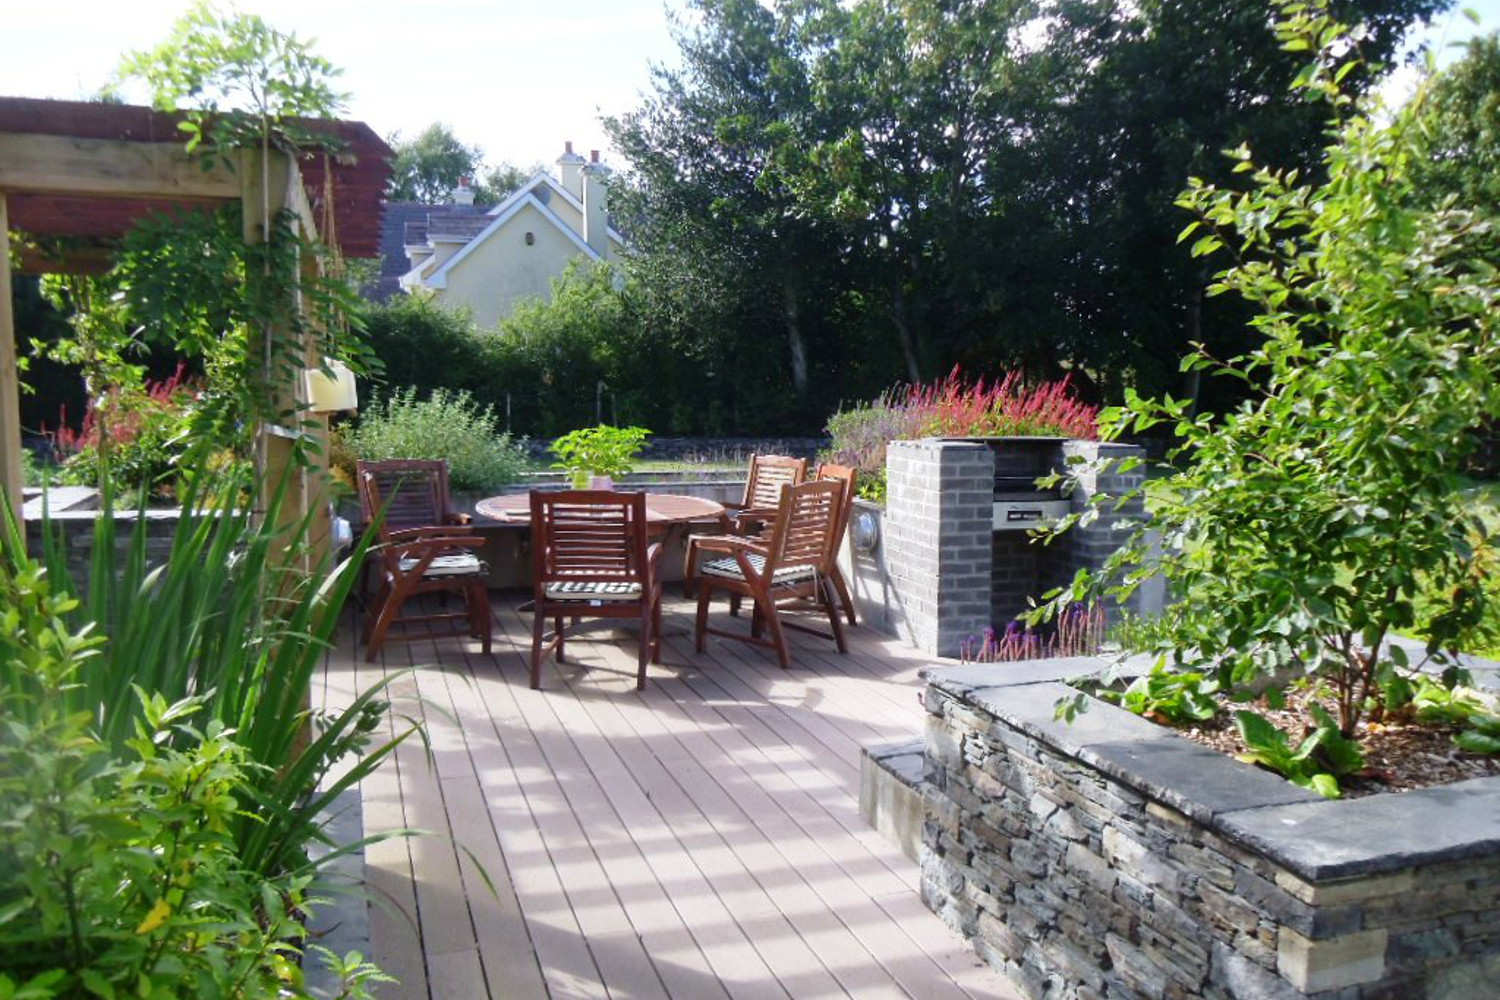 Tim Austen Garden Design Stylish Back Garden Killarney. Outdoor garden room in Killarney  Co  Kerry   Tim Austen Garden